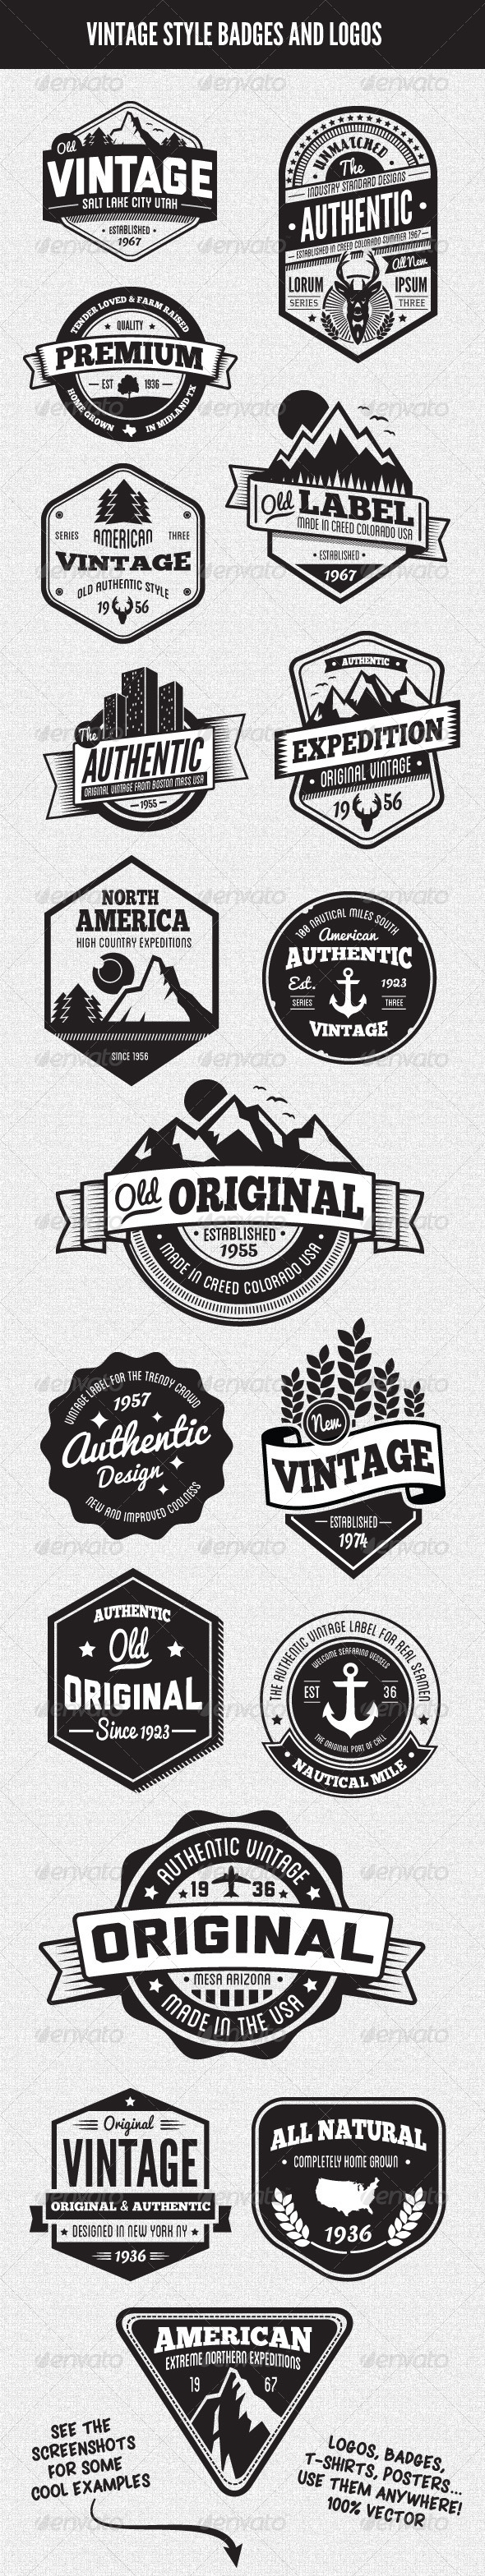 Vintage Style Badges and Logos Vol 3 - Badges & Stickers Web Elements